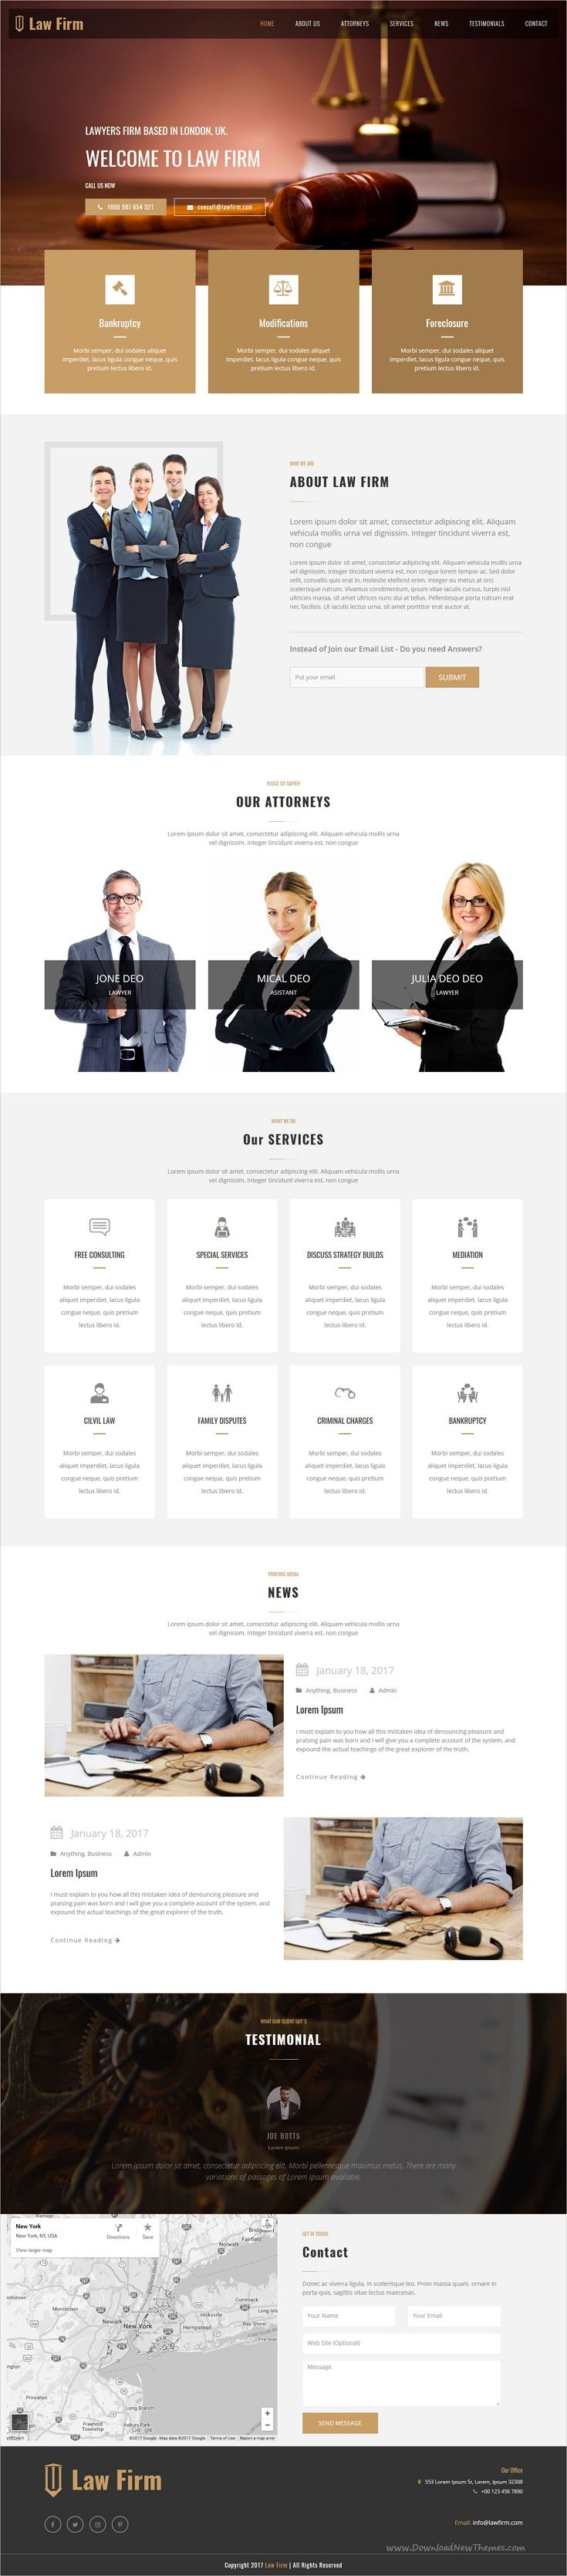 Law firm is a perfect responsive #HTML #bootstrap template for #lawyer, attorney or law firm websites download now➩  https://themeforest.net/item/monster-creative-html-template/19253075?ref=Datasata